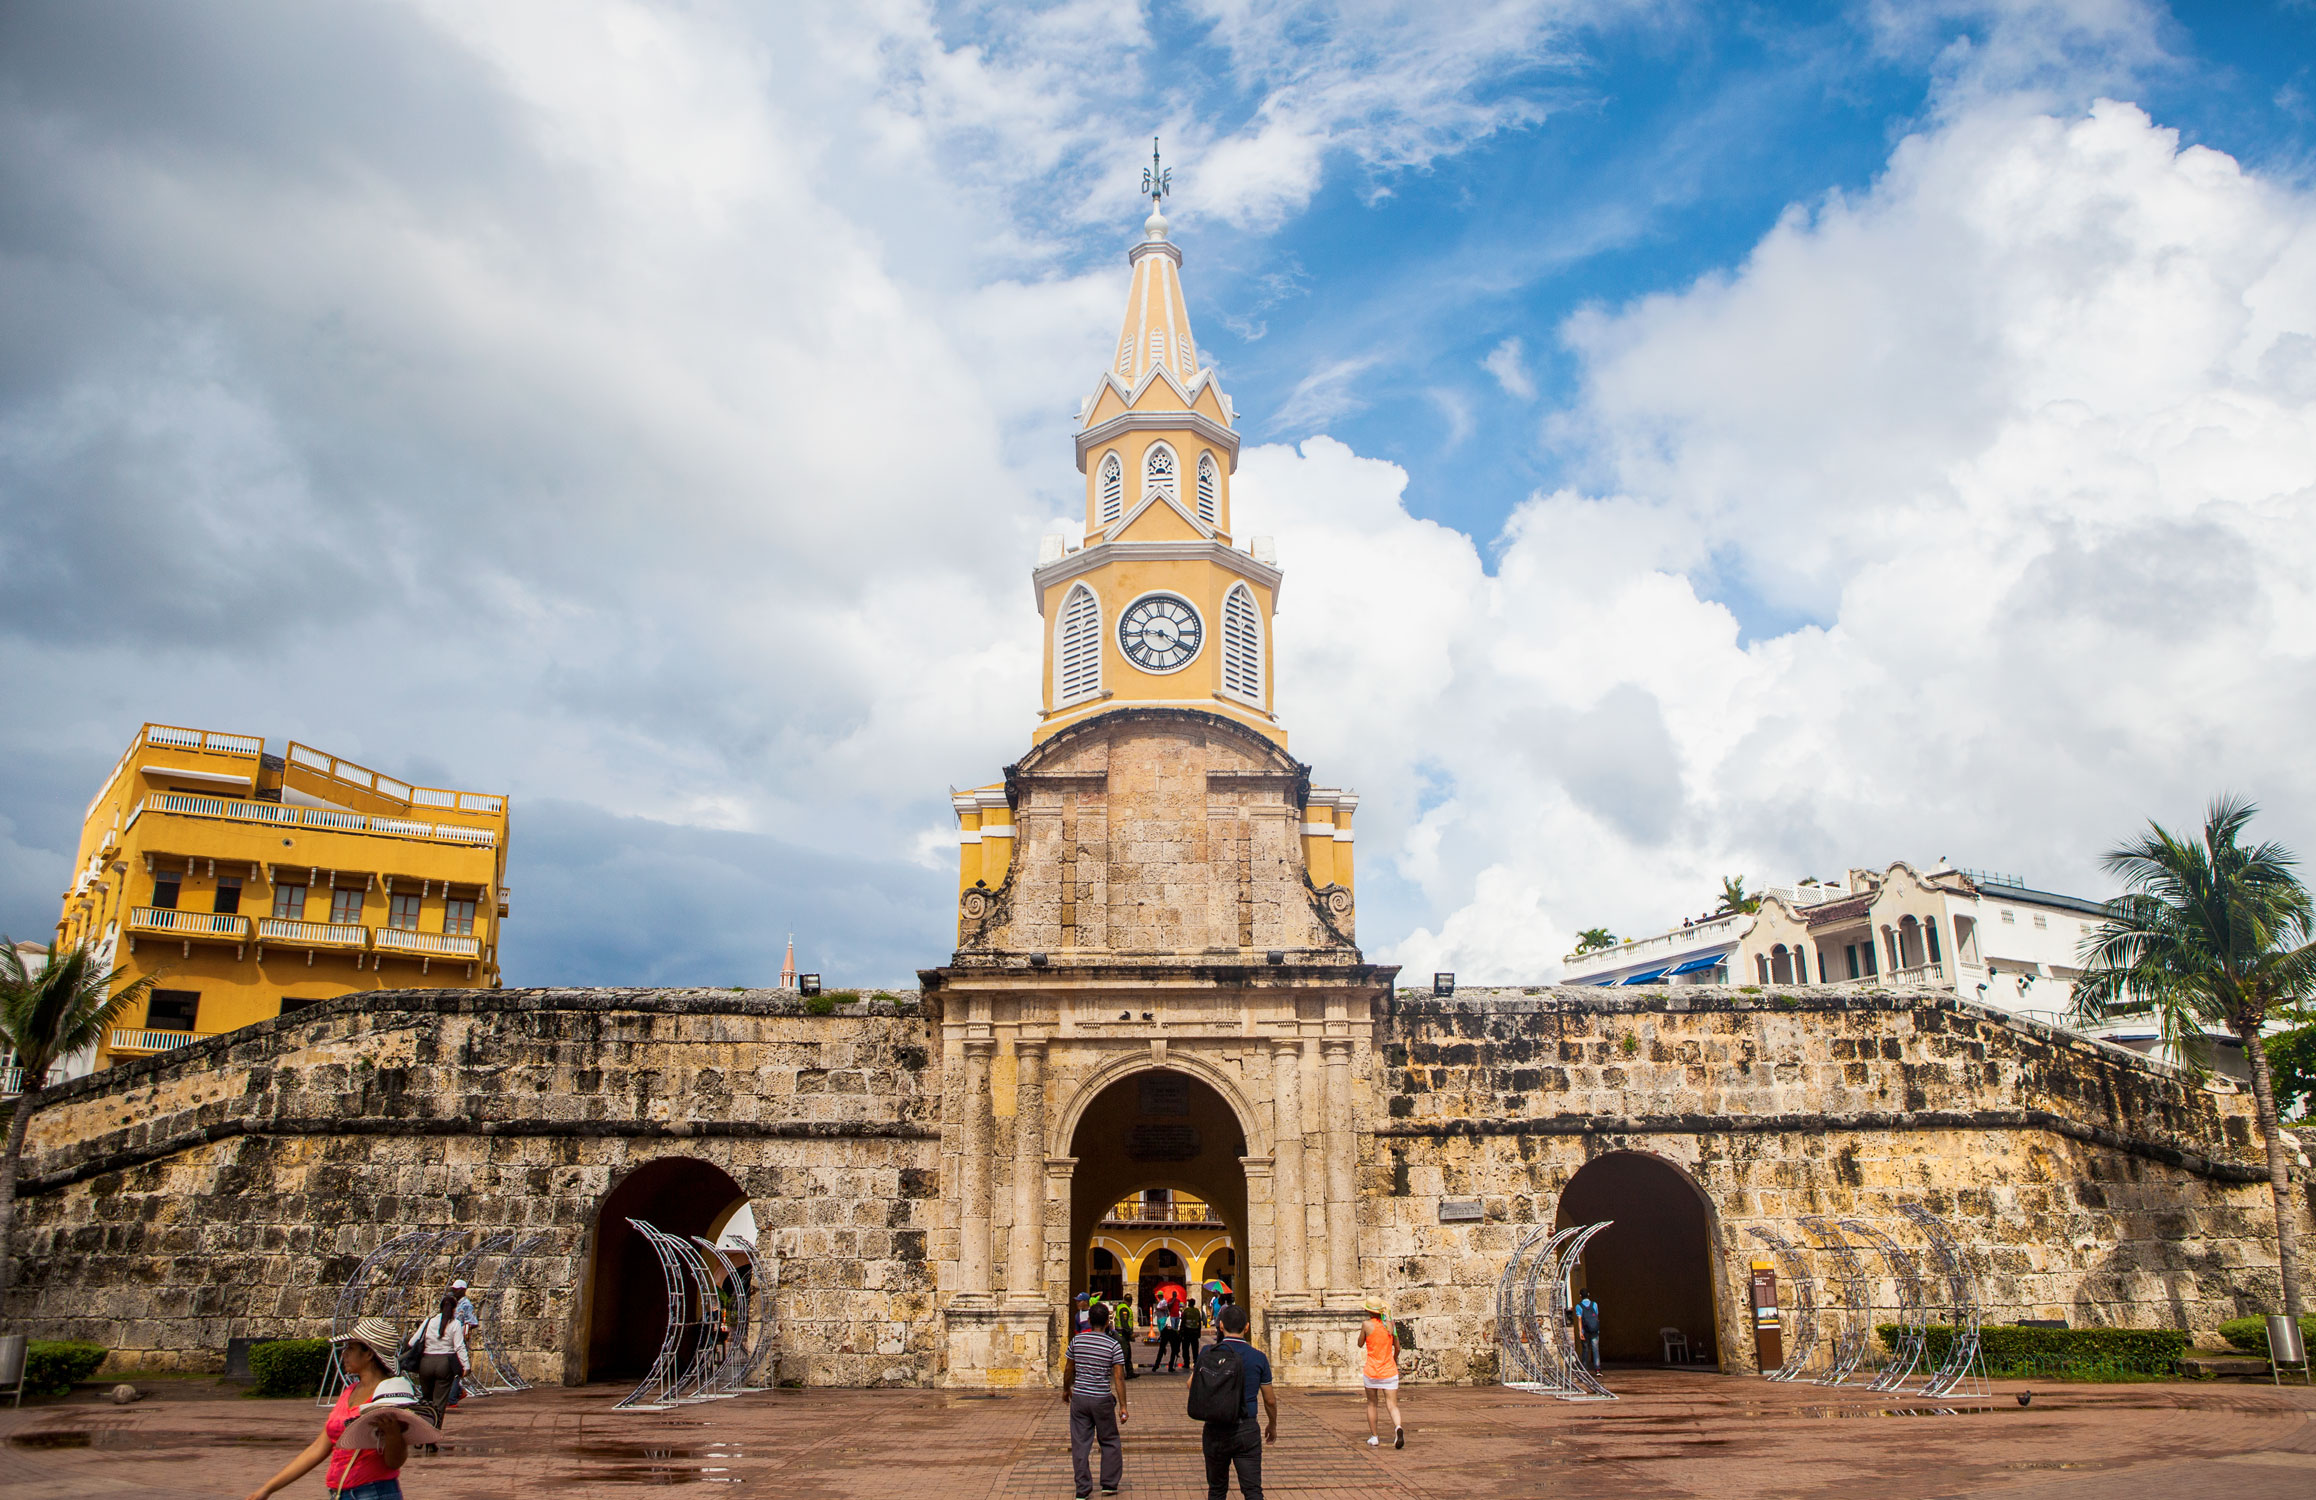 cartagena-colombia-wander-south-old-town-gate-1.jpg